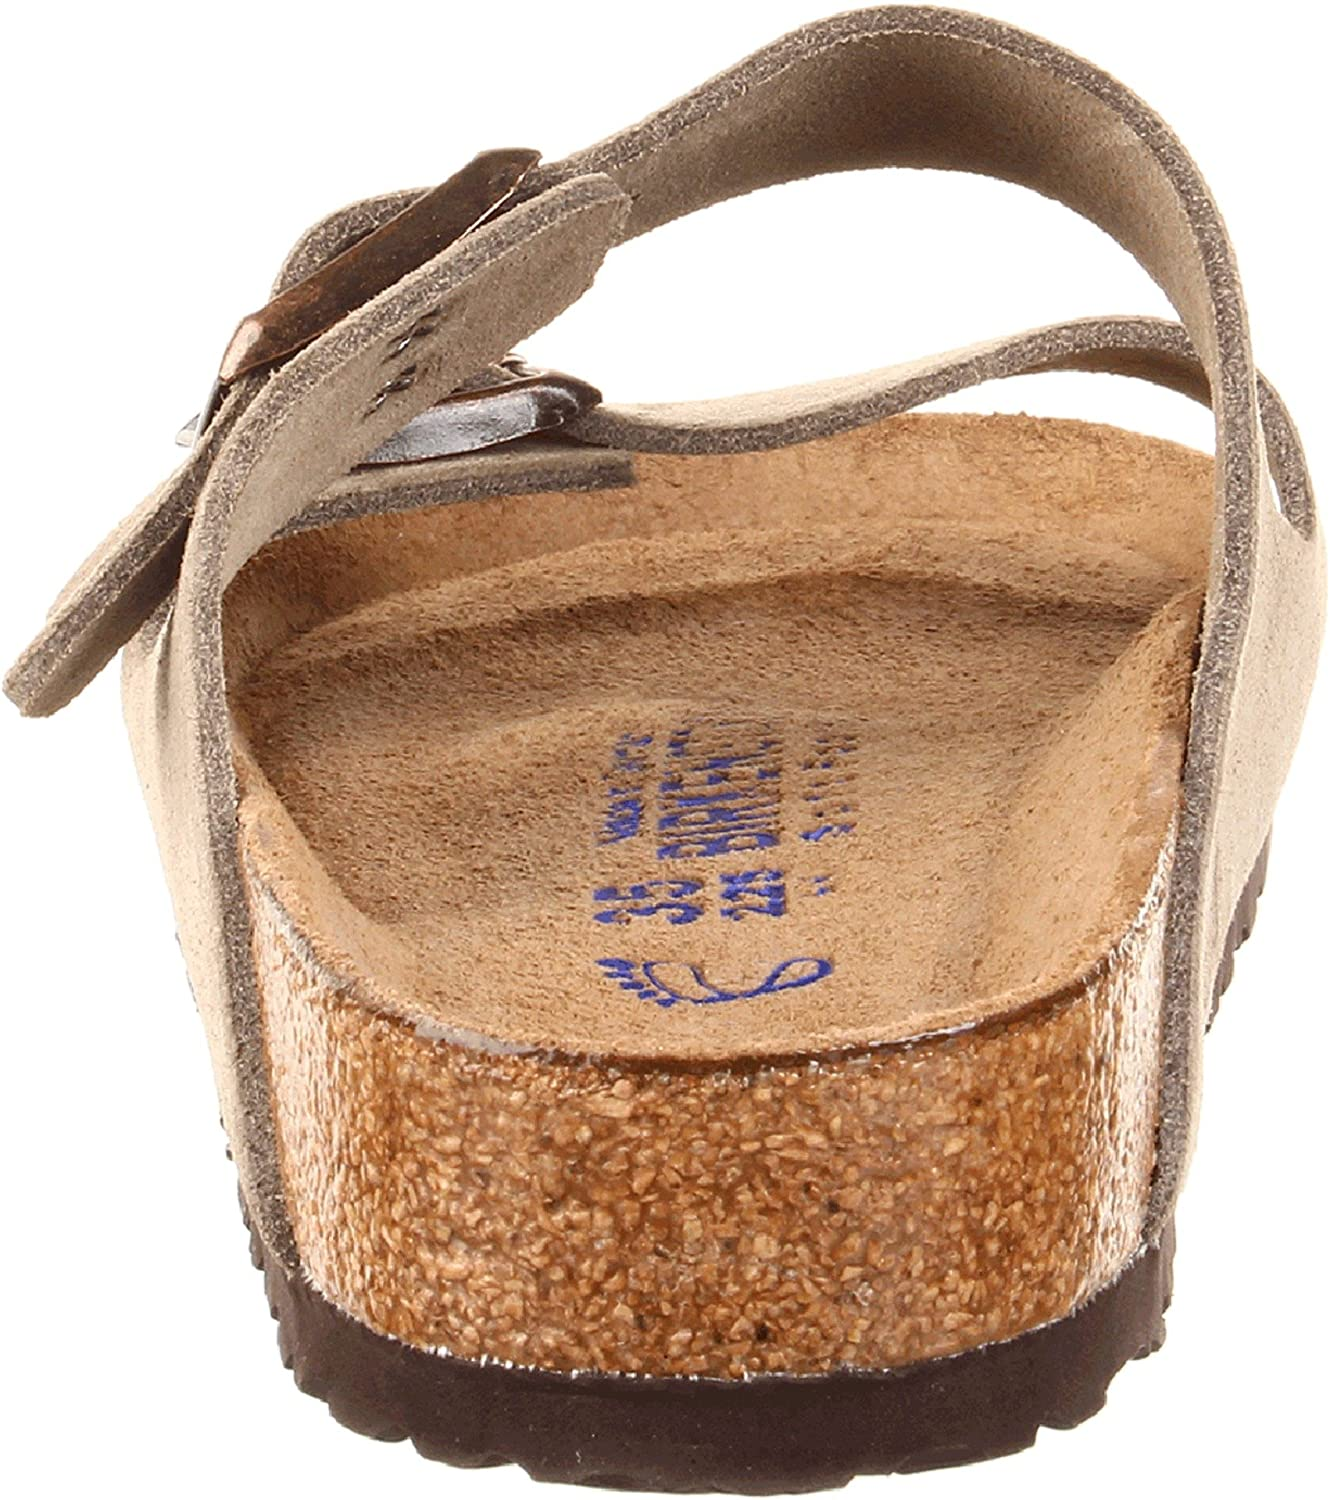 Birkenstock Arizona Soft Footbed M Leather Sandal B000W0BVJM 42 M Footbed EU/11-11.5 B(M) US Women/9-9.5 B(M) US Men|Taupe Suede Soft Footbed e0282c